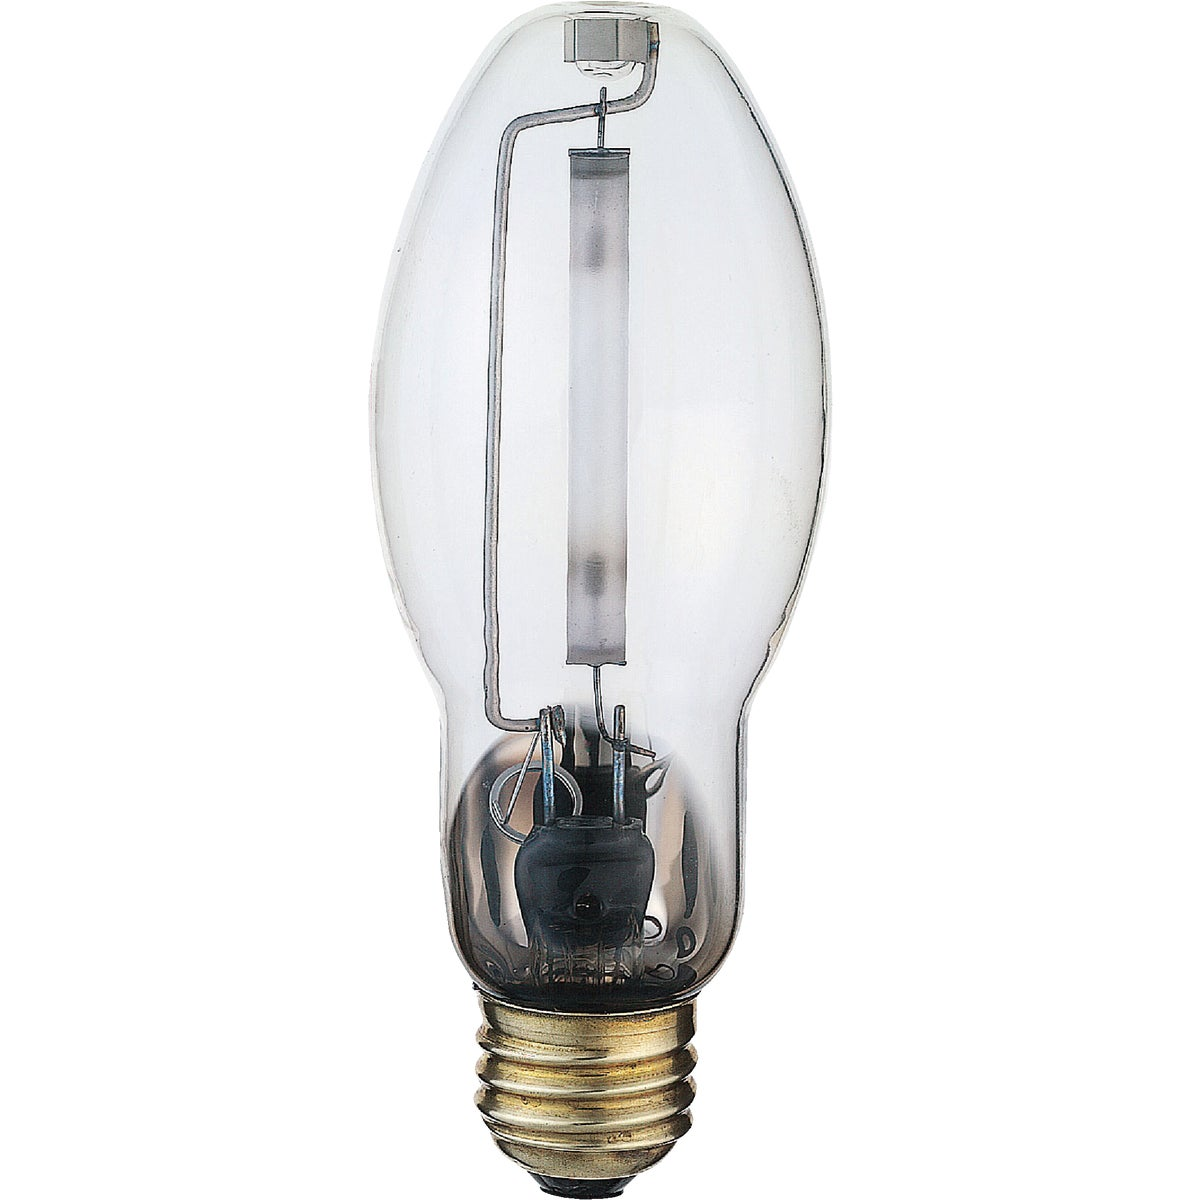 70W HP SODIUM BULB - 26422 by G E Lighting Incom